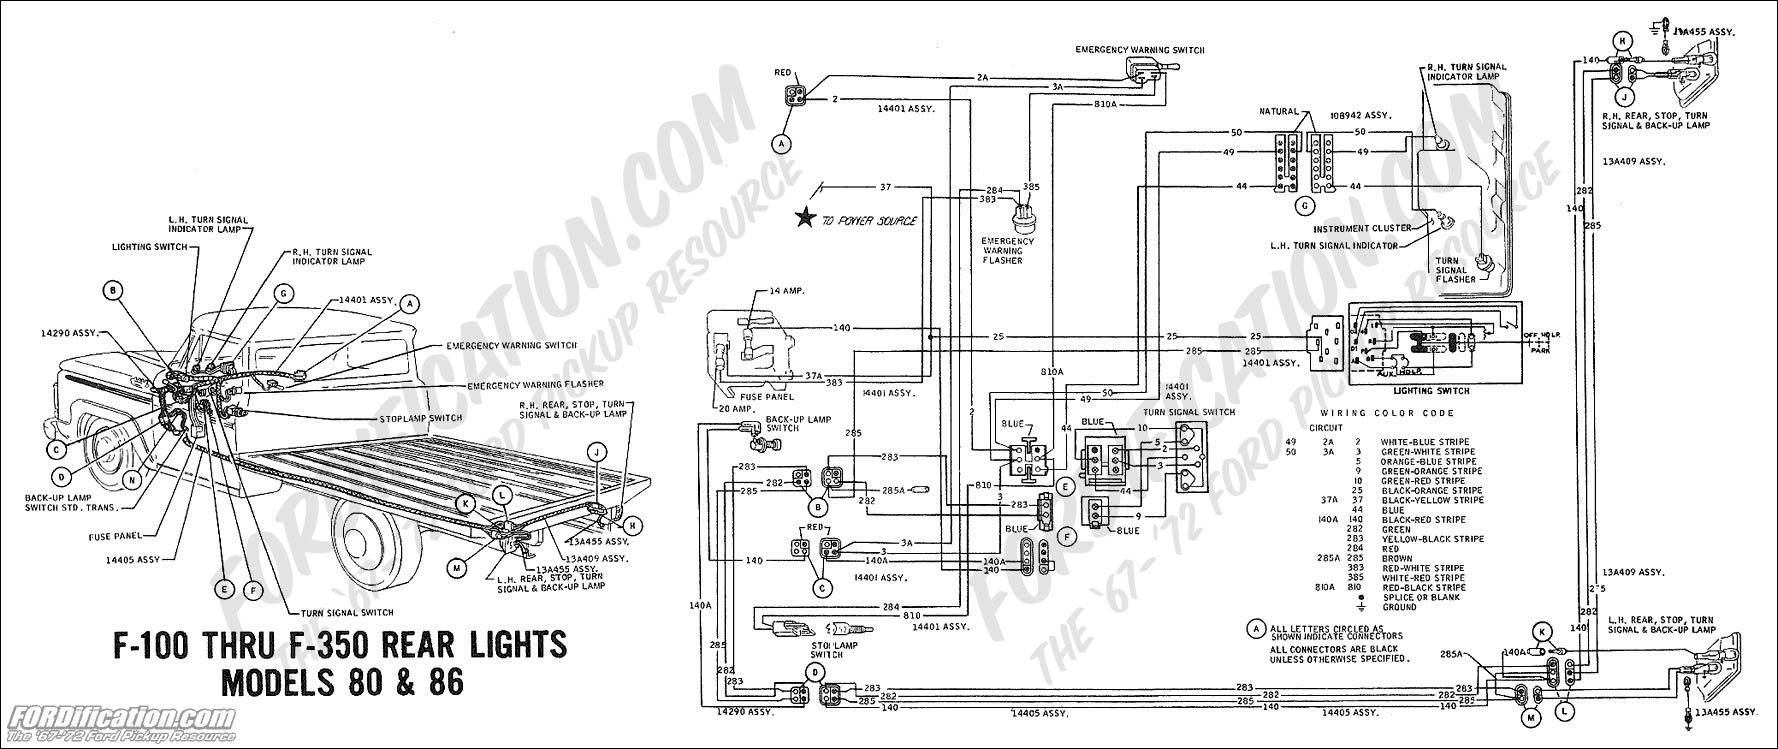 wiring_69rearlights mdls80 86 ford truck technical drawings and schematics section h wiring ford wiring diagrams at bayanpartner.co